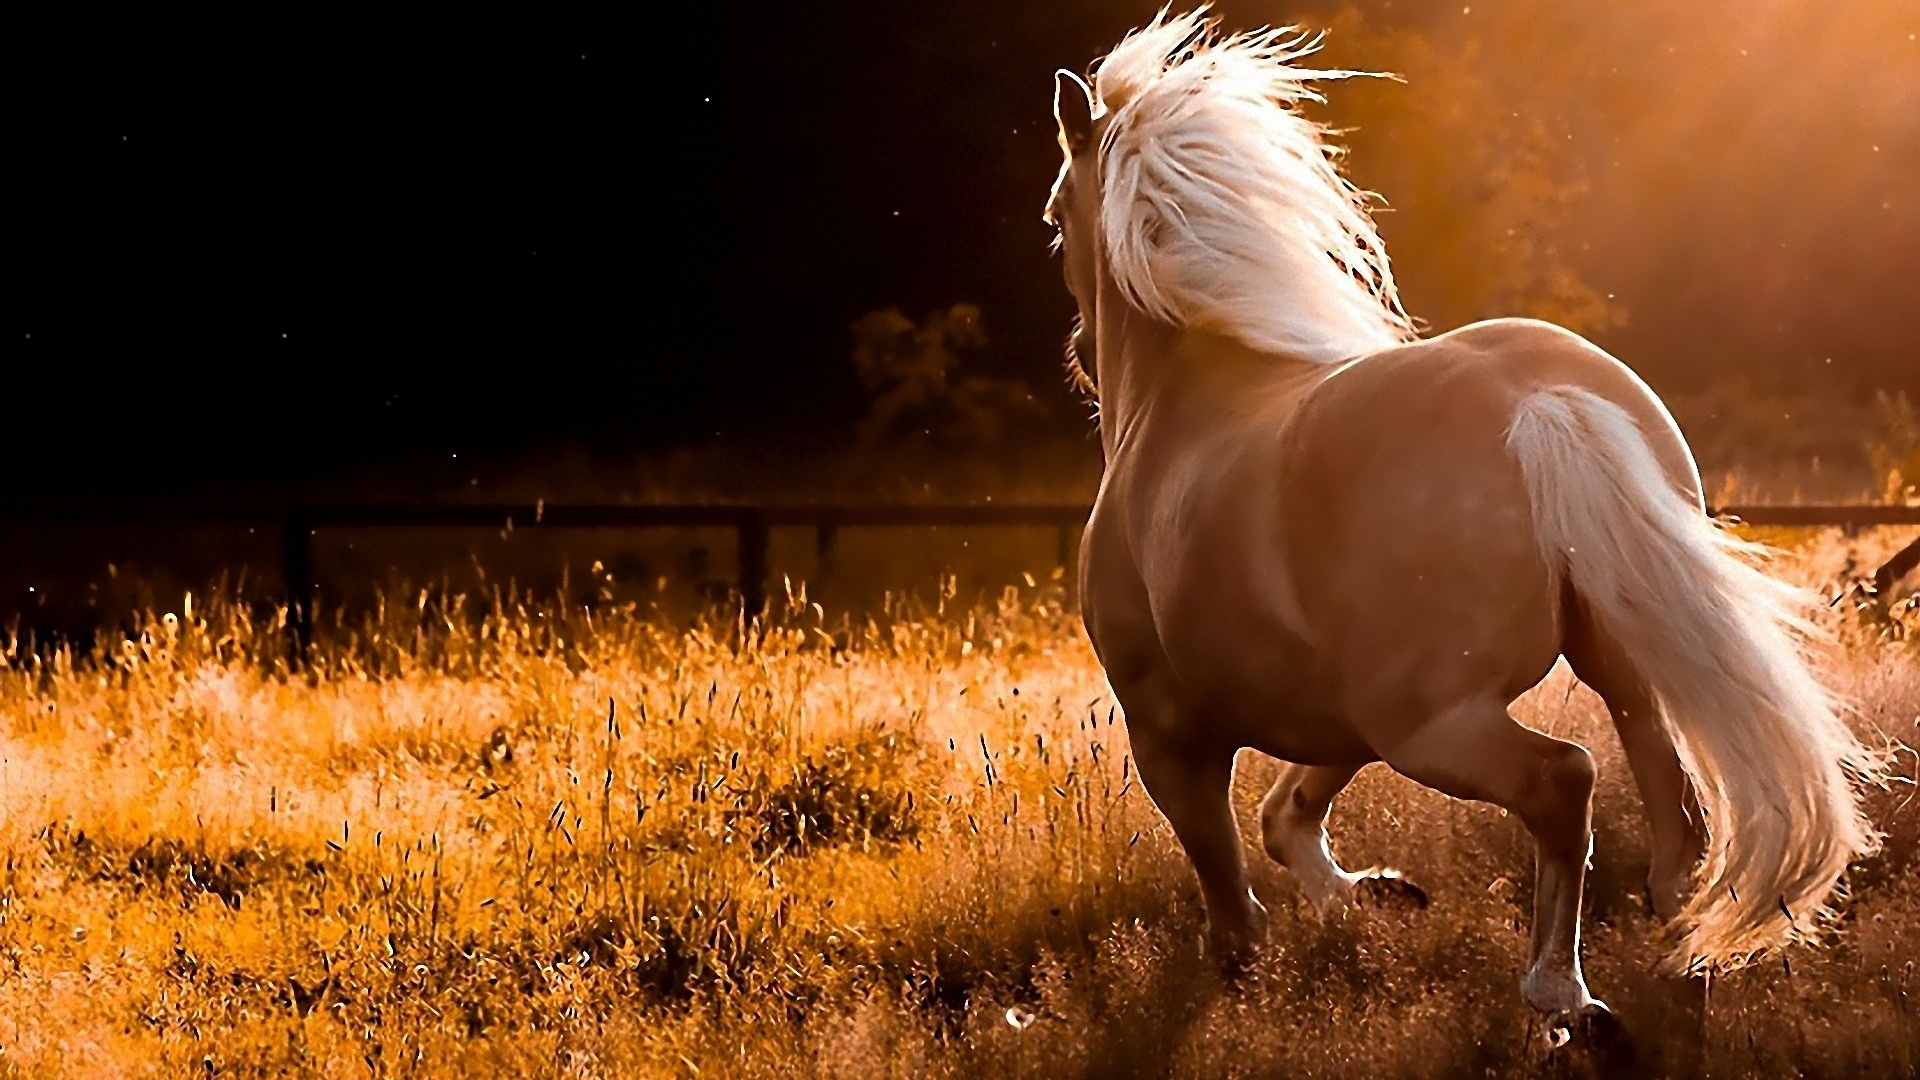 In Ancient Times Horses Were Used In Battle Soldiers On Horseback 1920x1080